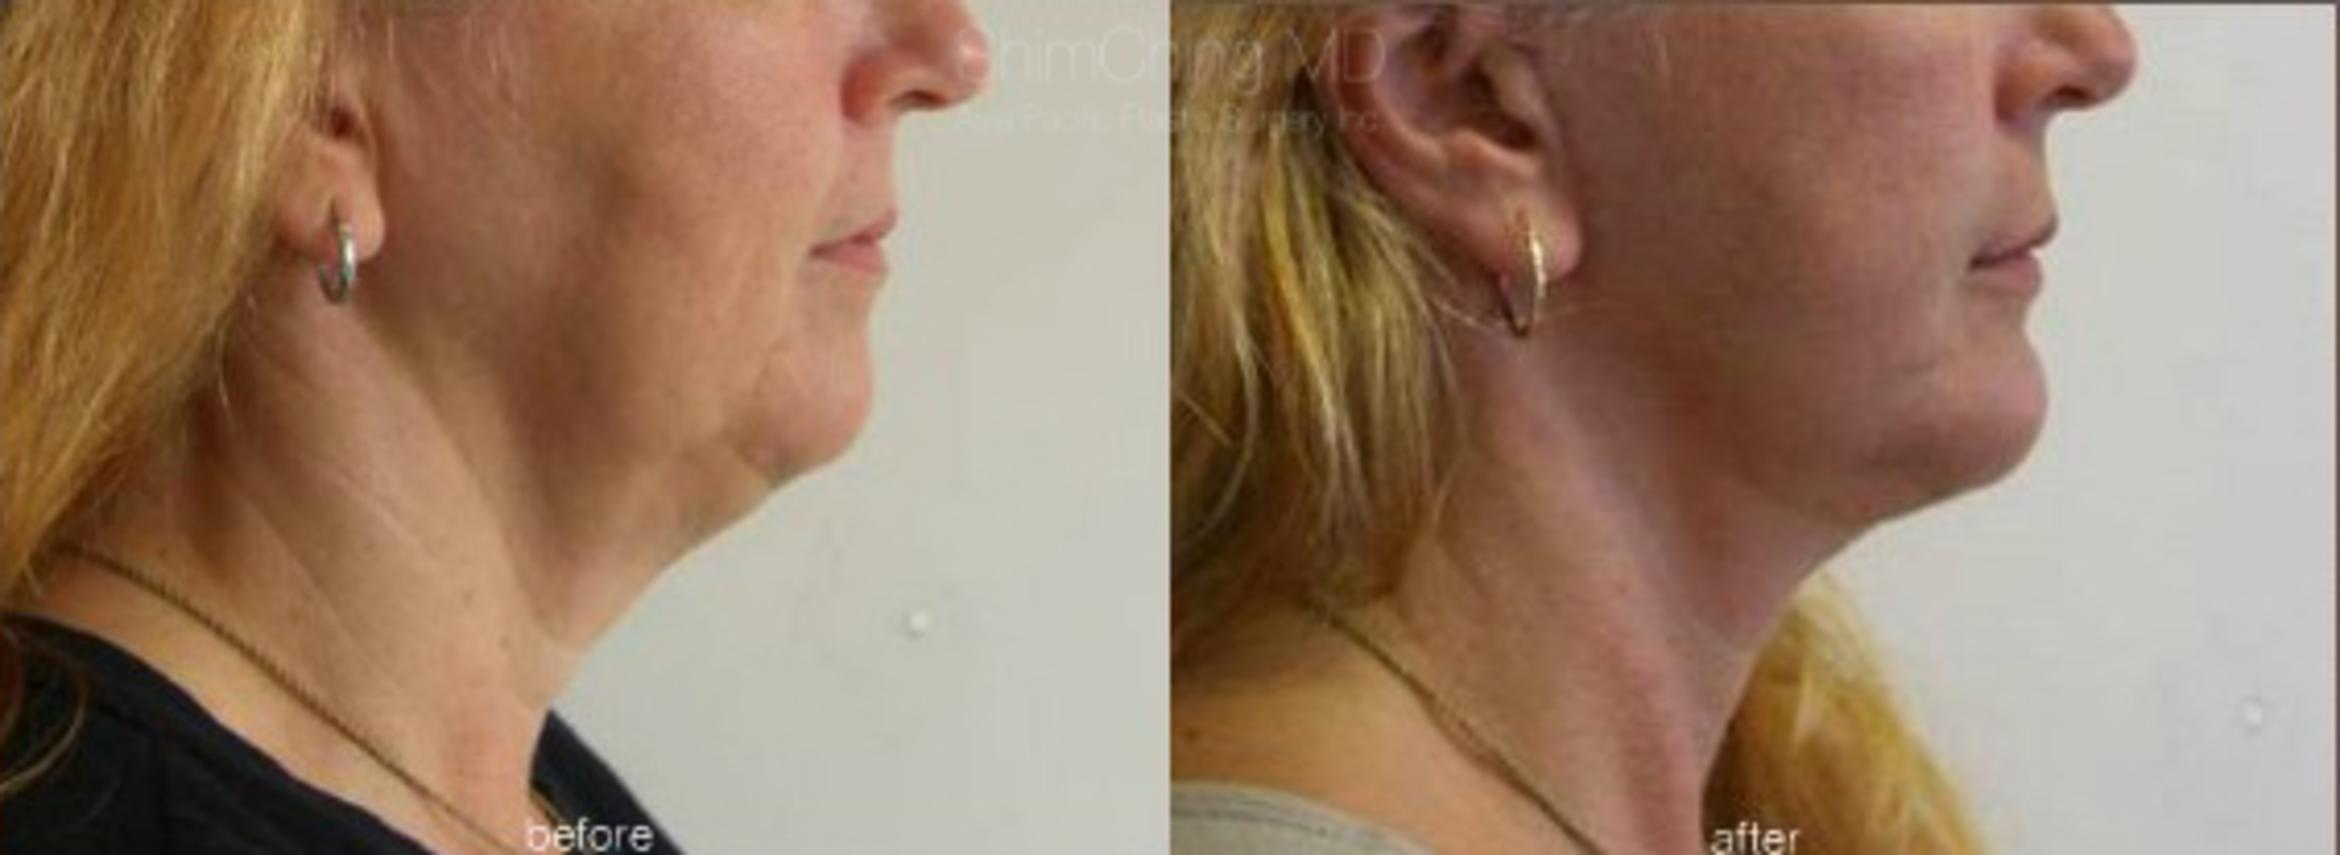 Necklift Case 27 Before & After View #1 | Honolulu, HI | Shim Ching, MD: Asia Pacific Plastic Surgery